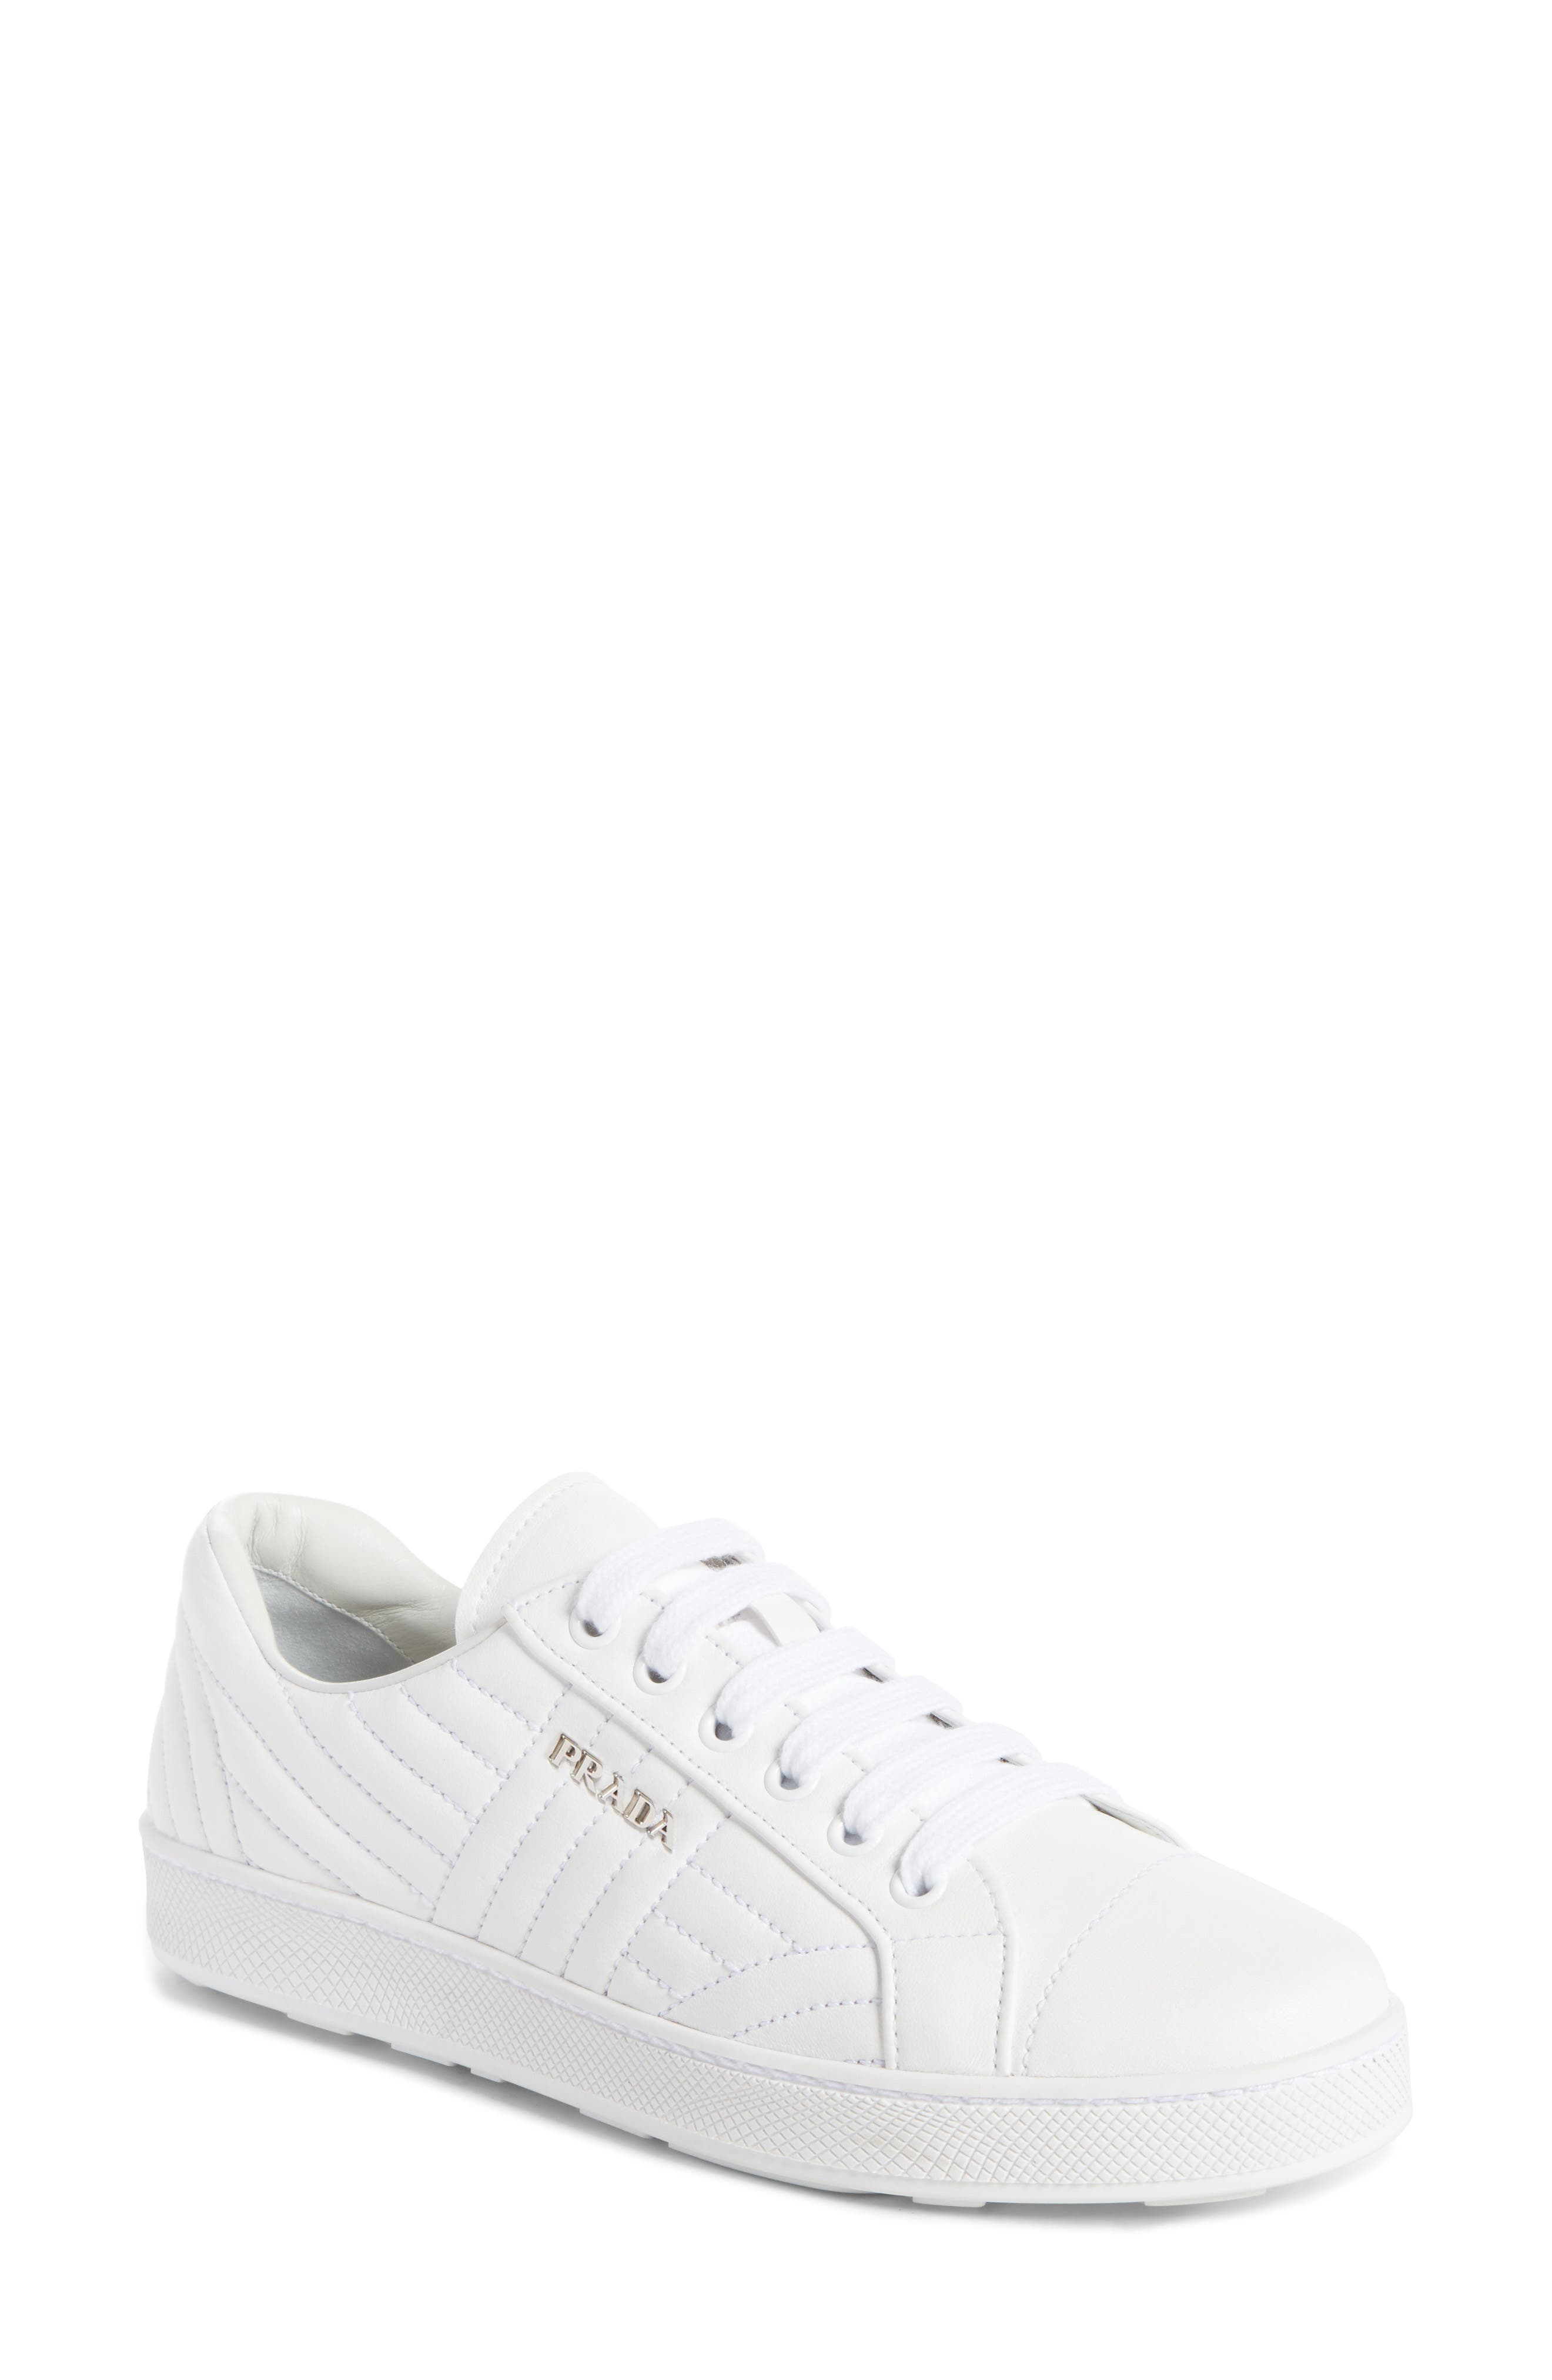 Prada Quilted Leather Sneaker (Women). PINK; WHITE